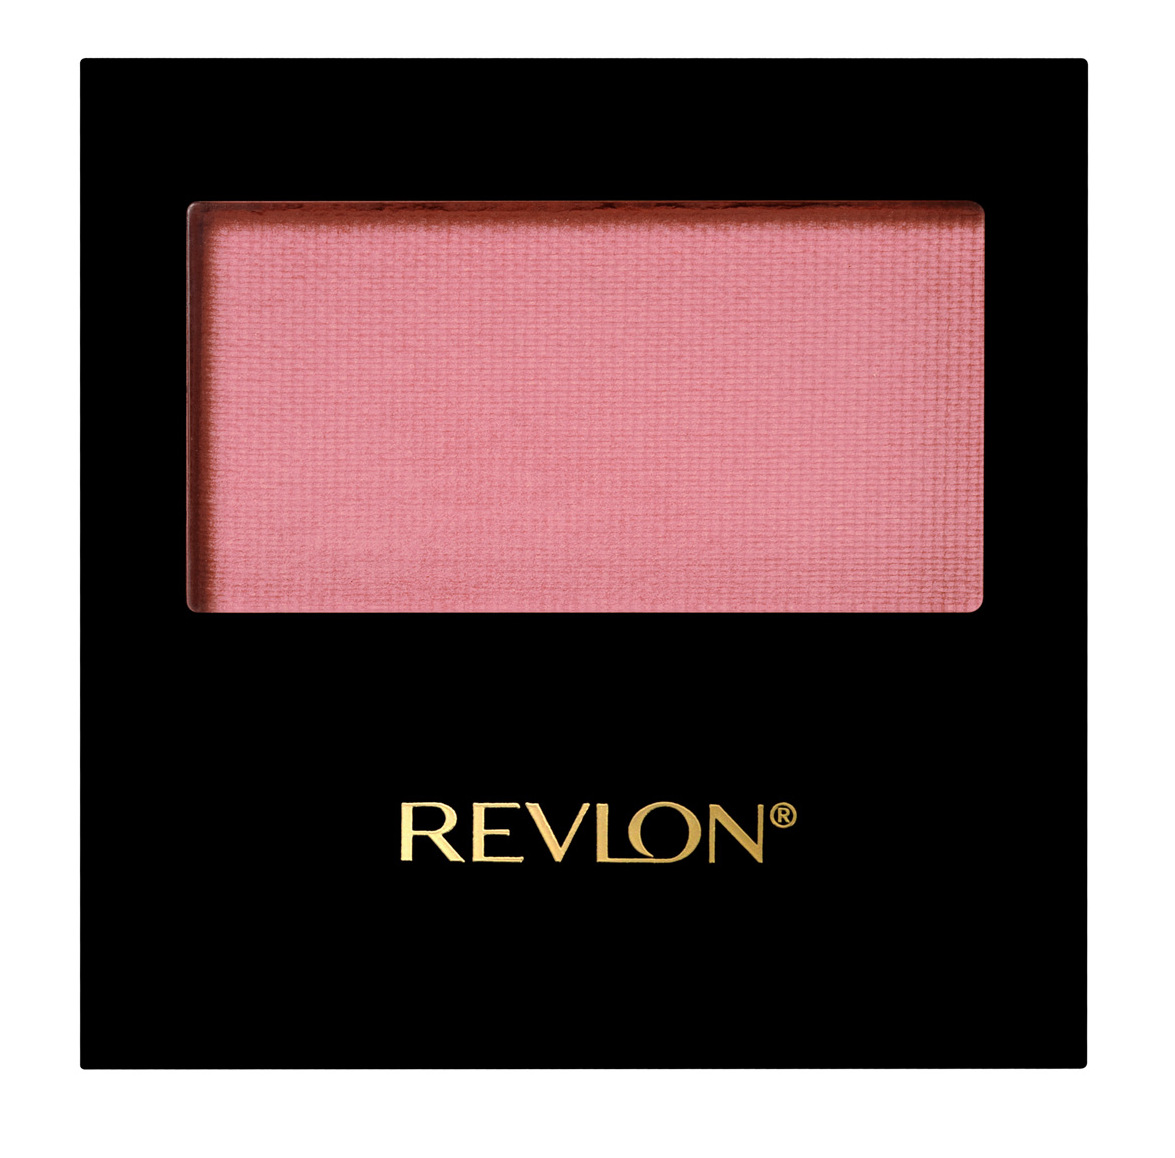 REVLON Румяна для лица 018 / Powder Blush Orchid charm - Румяна